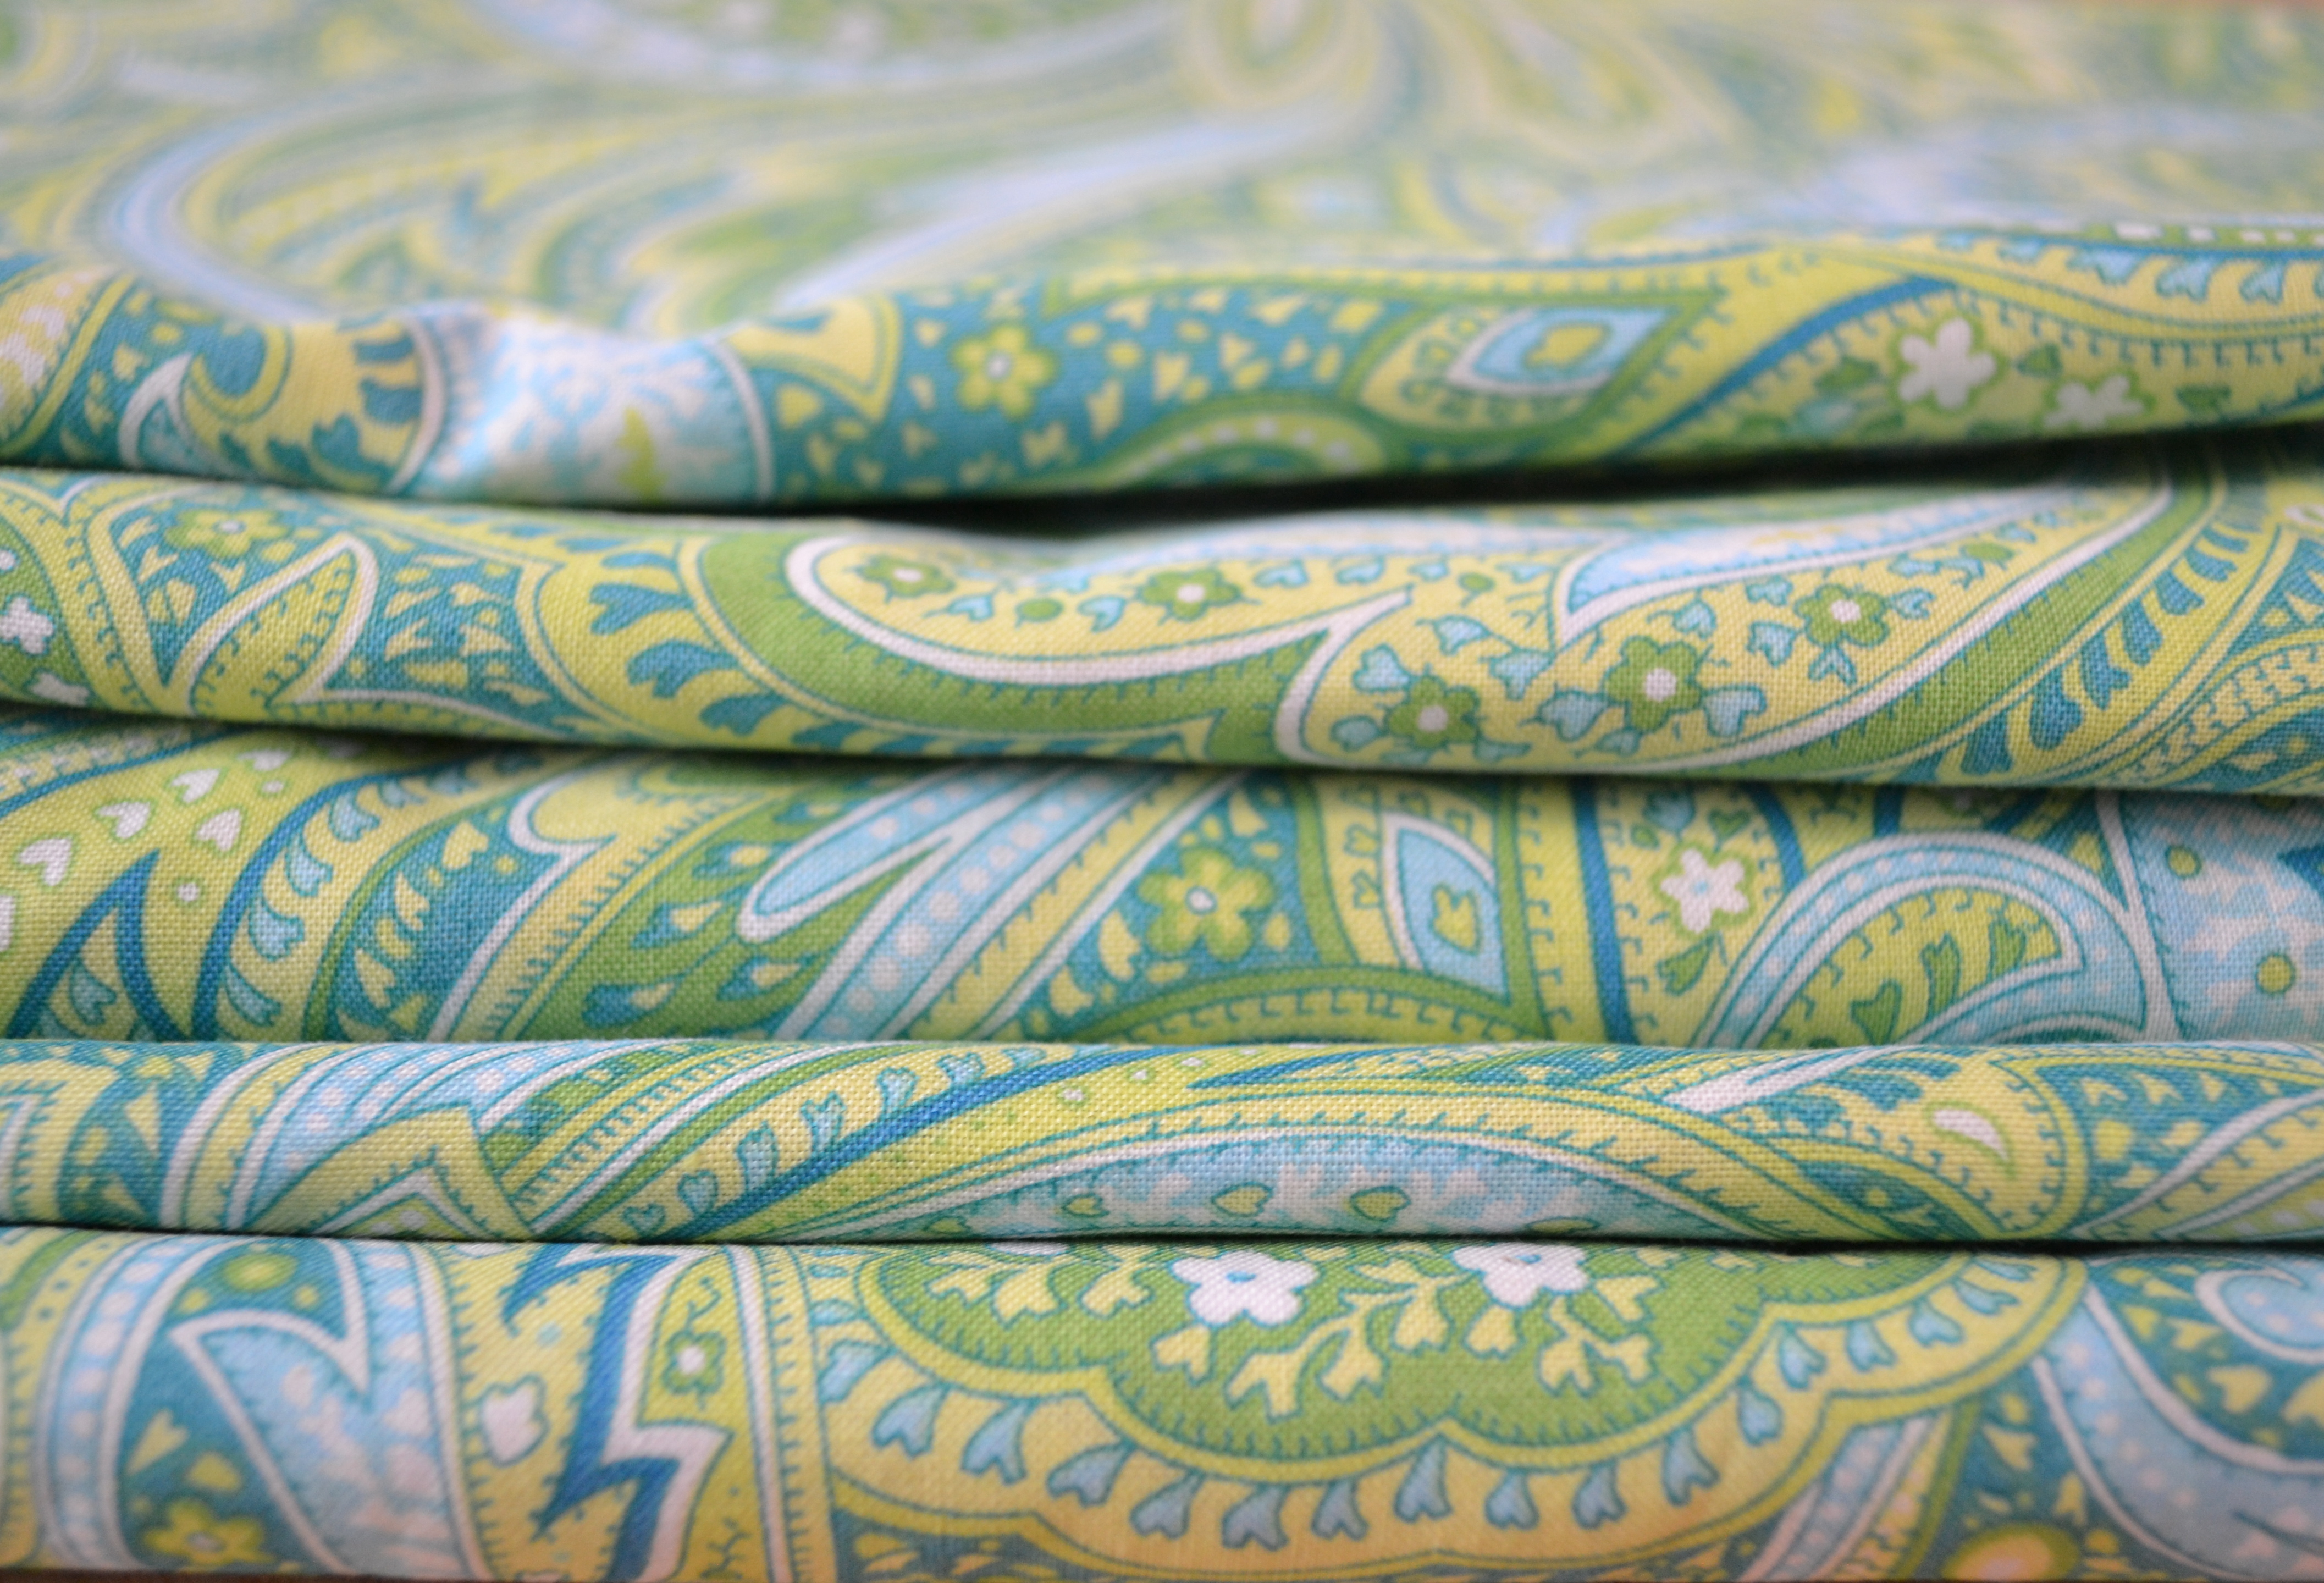 Blue And Green Paisley Fabric For The Easy DIY Table Runner.